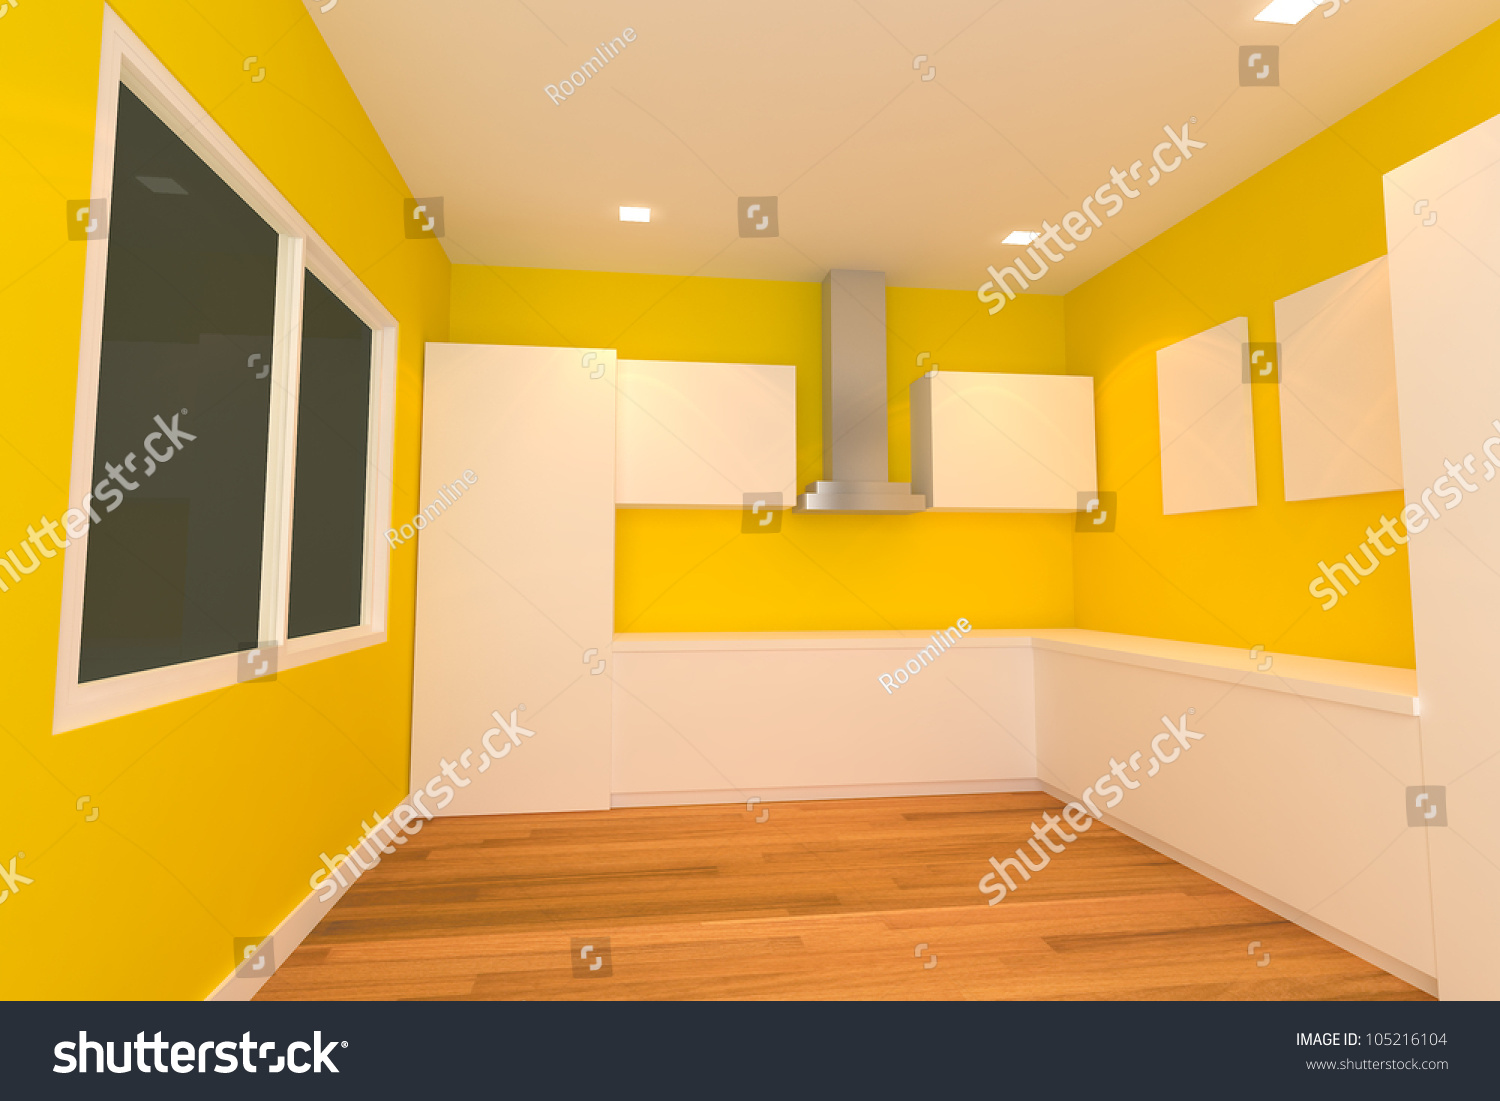 Empty Kitchen Wall Empty Interior Design For Kitchen Room With Yellow Wall Stock